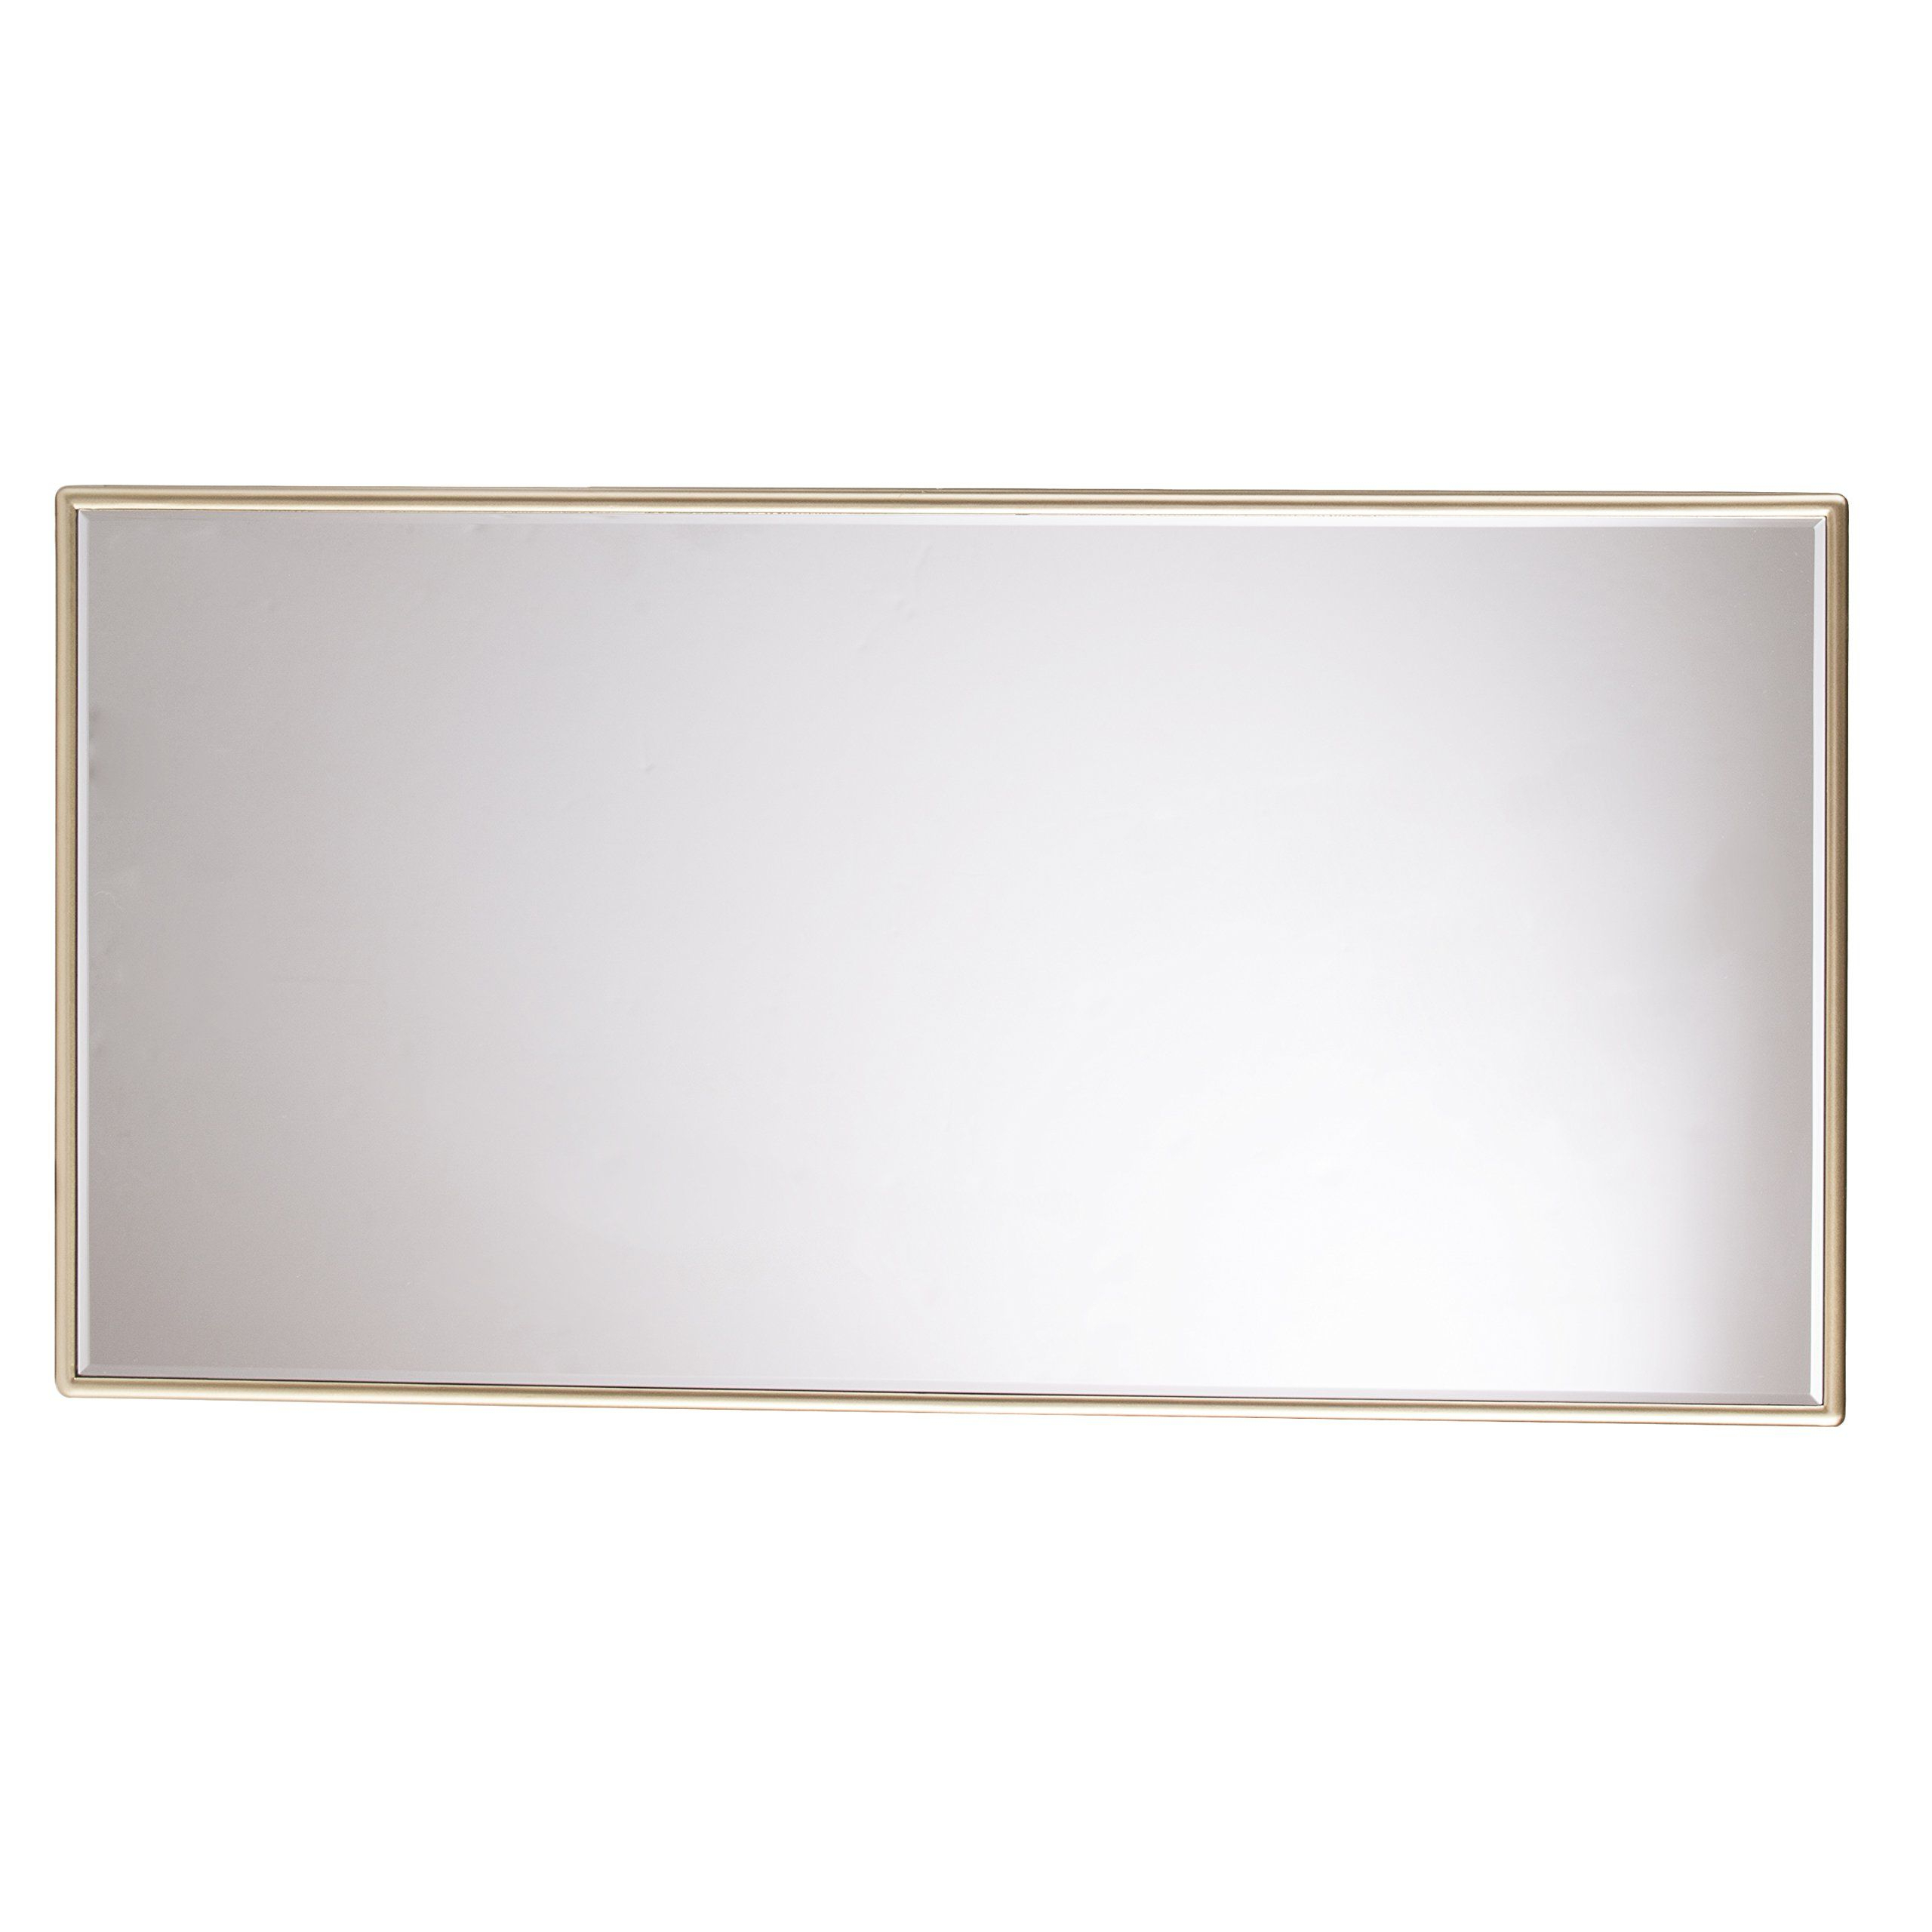 Furniture Hotspot Mirrored Coffee Table Mirror W/champagne Intended For Most Recently Released Velma Modern Satin Plated Coffee Tables (View 2 of 20)